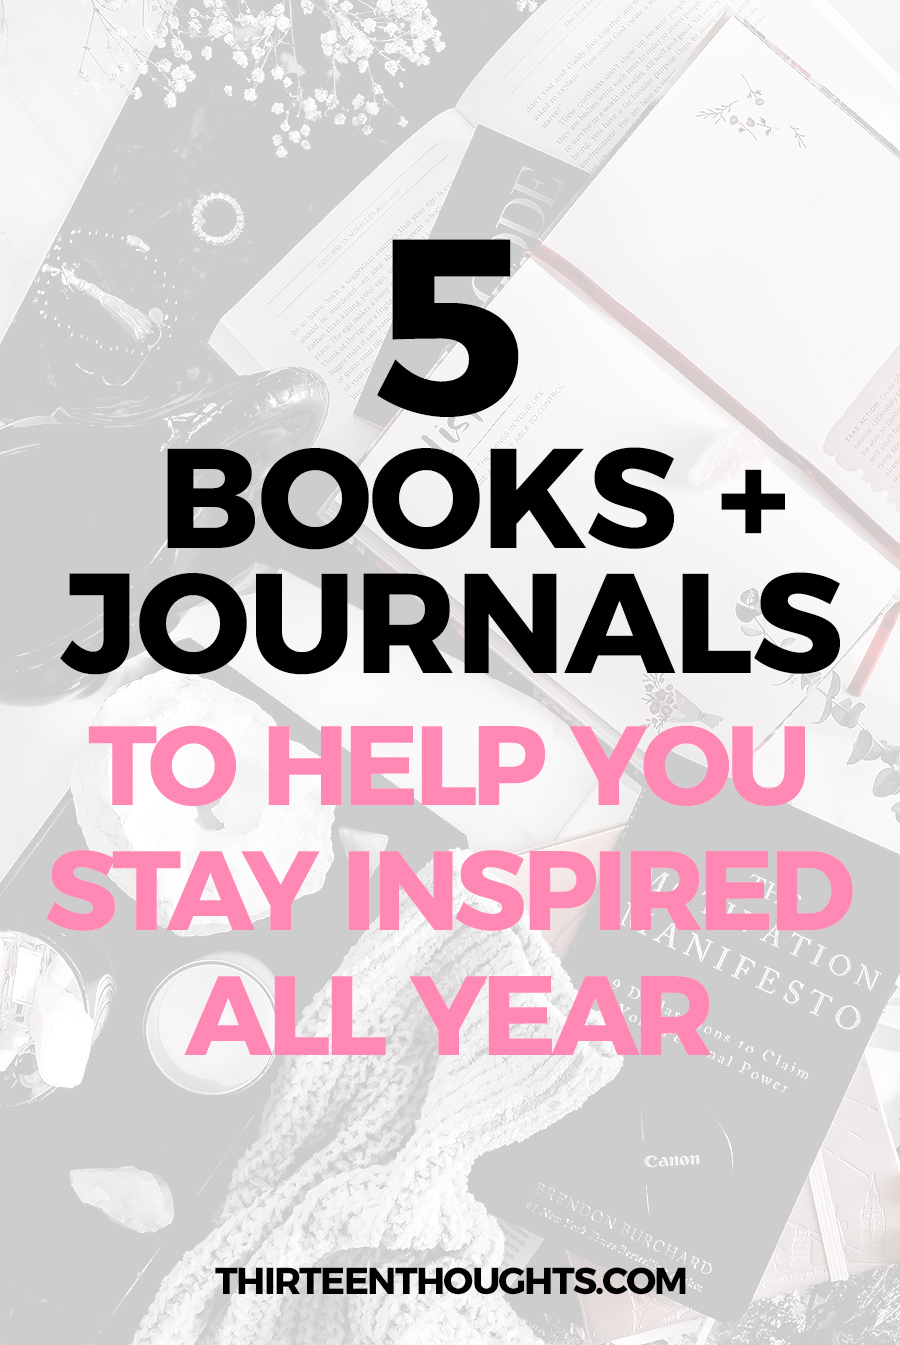 BOOKS TO HELP YOU STAY INSPIRED ALL YEAR